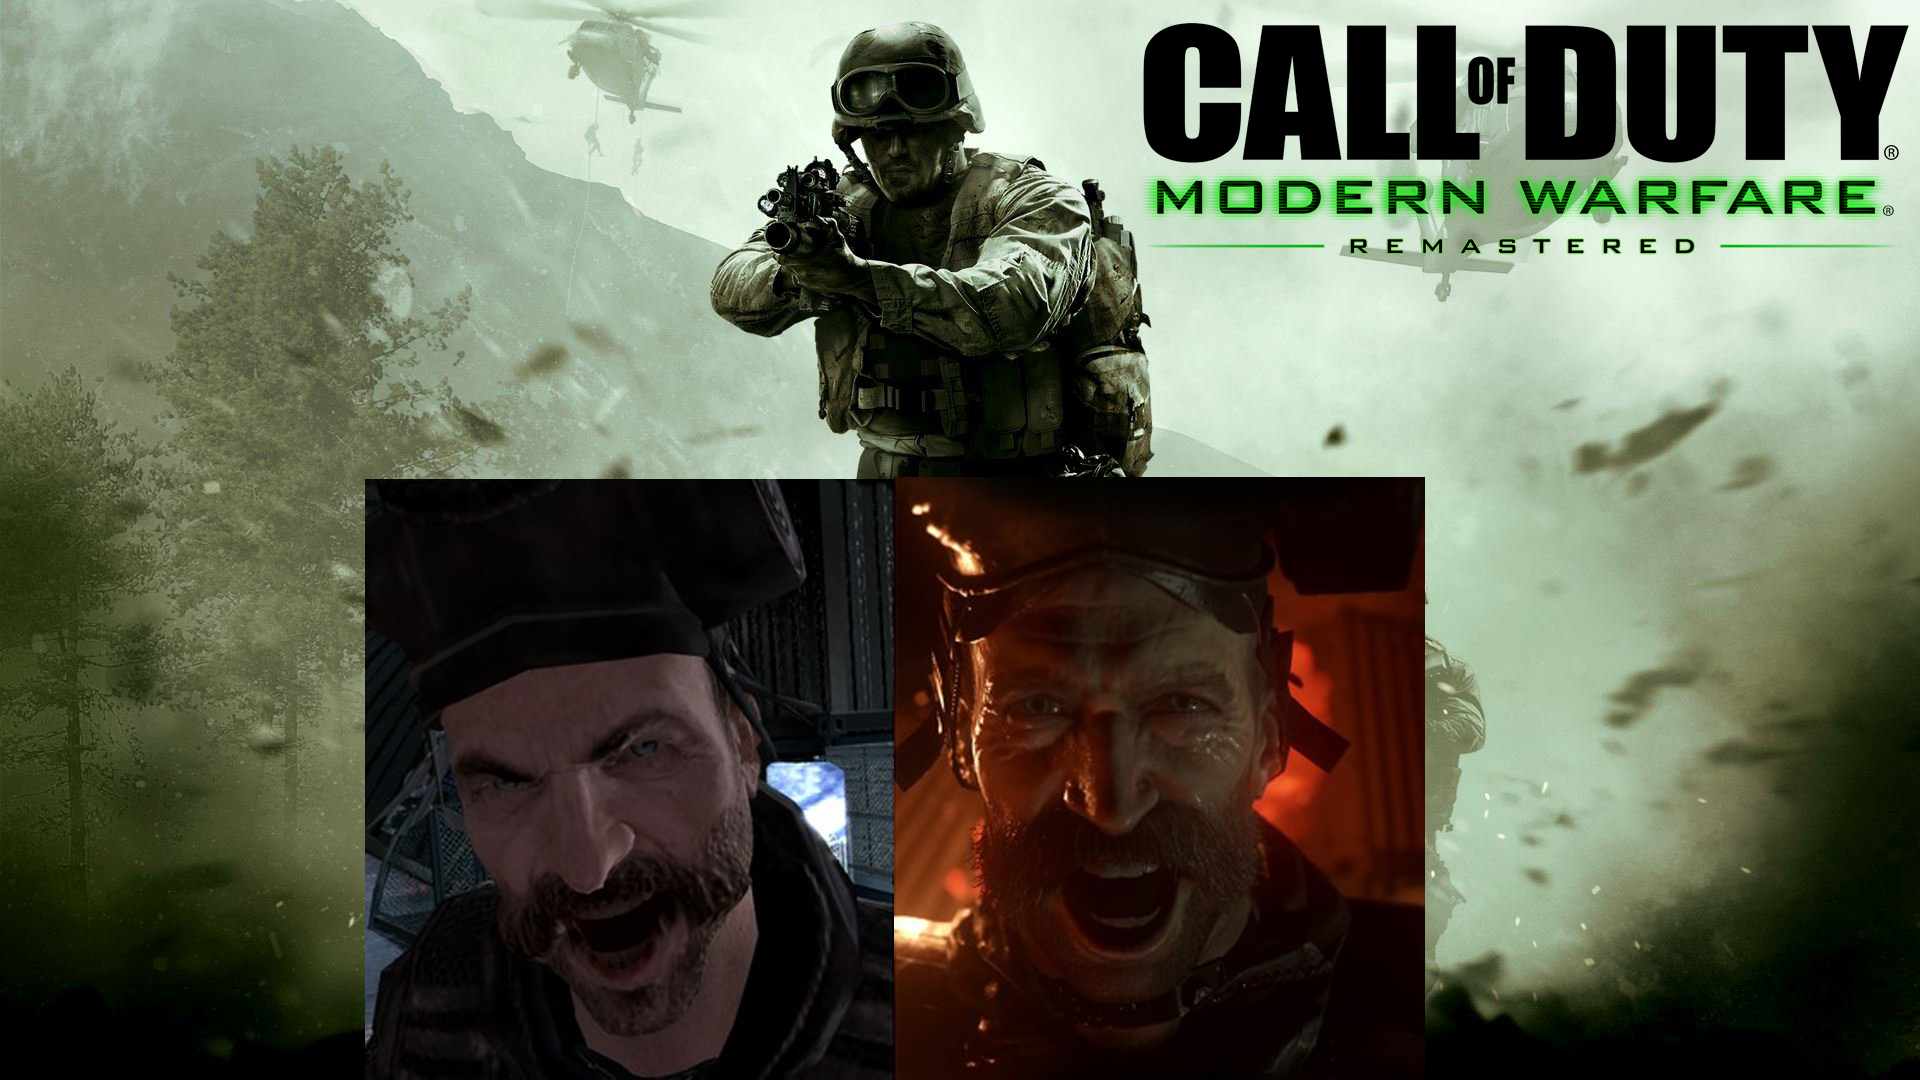 Call of Duty Modern Warfare Remastered – Graphics Comparison (WATCH HERE)